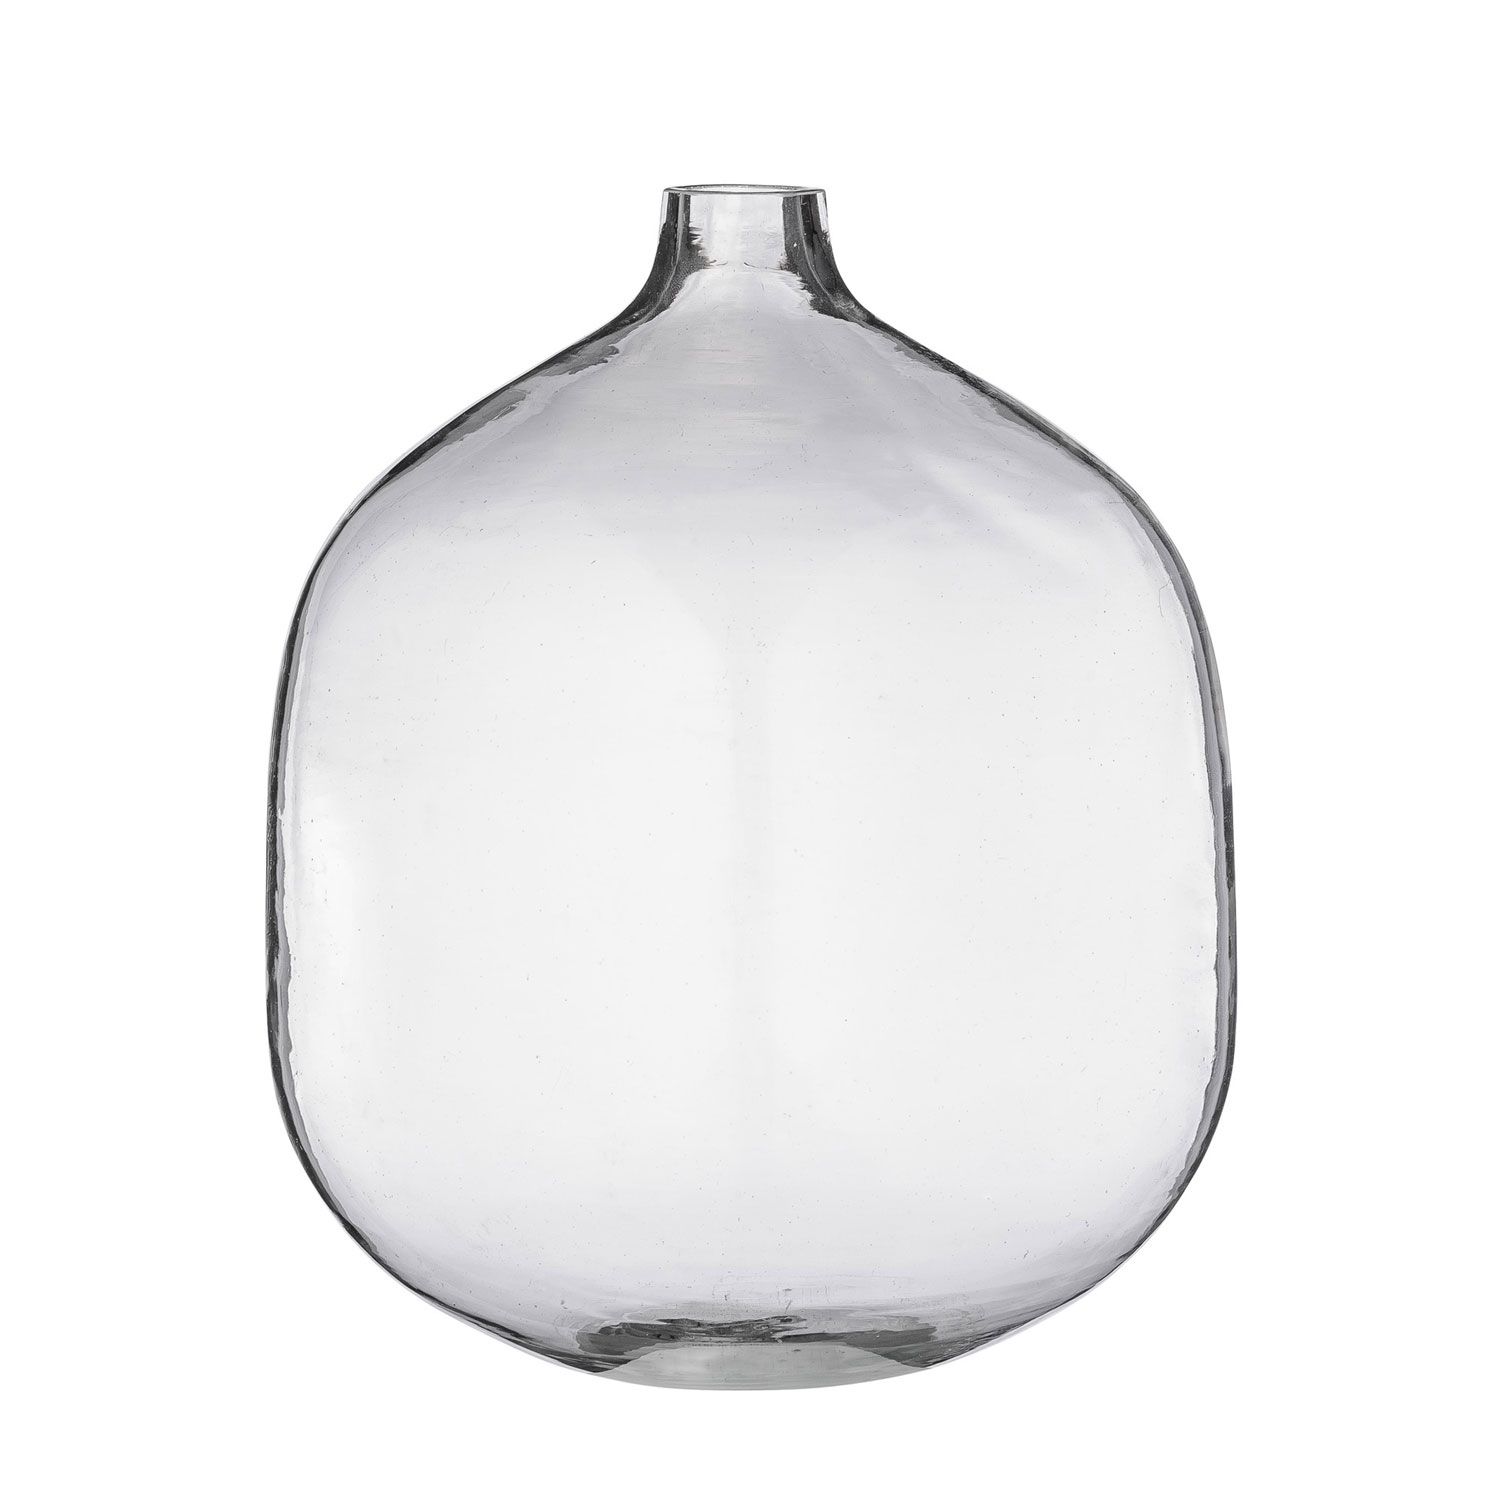 Vases Category